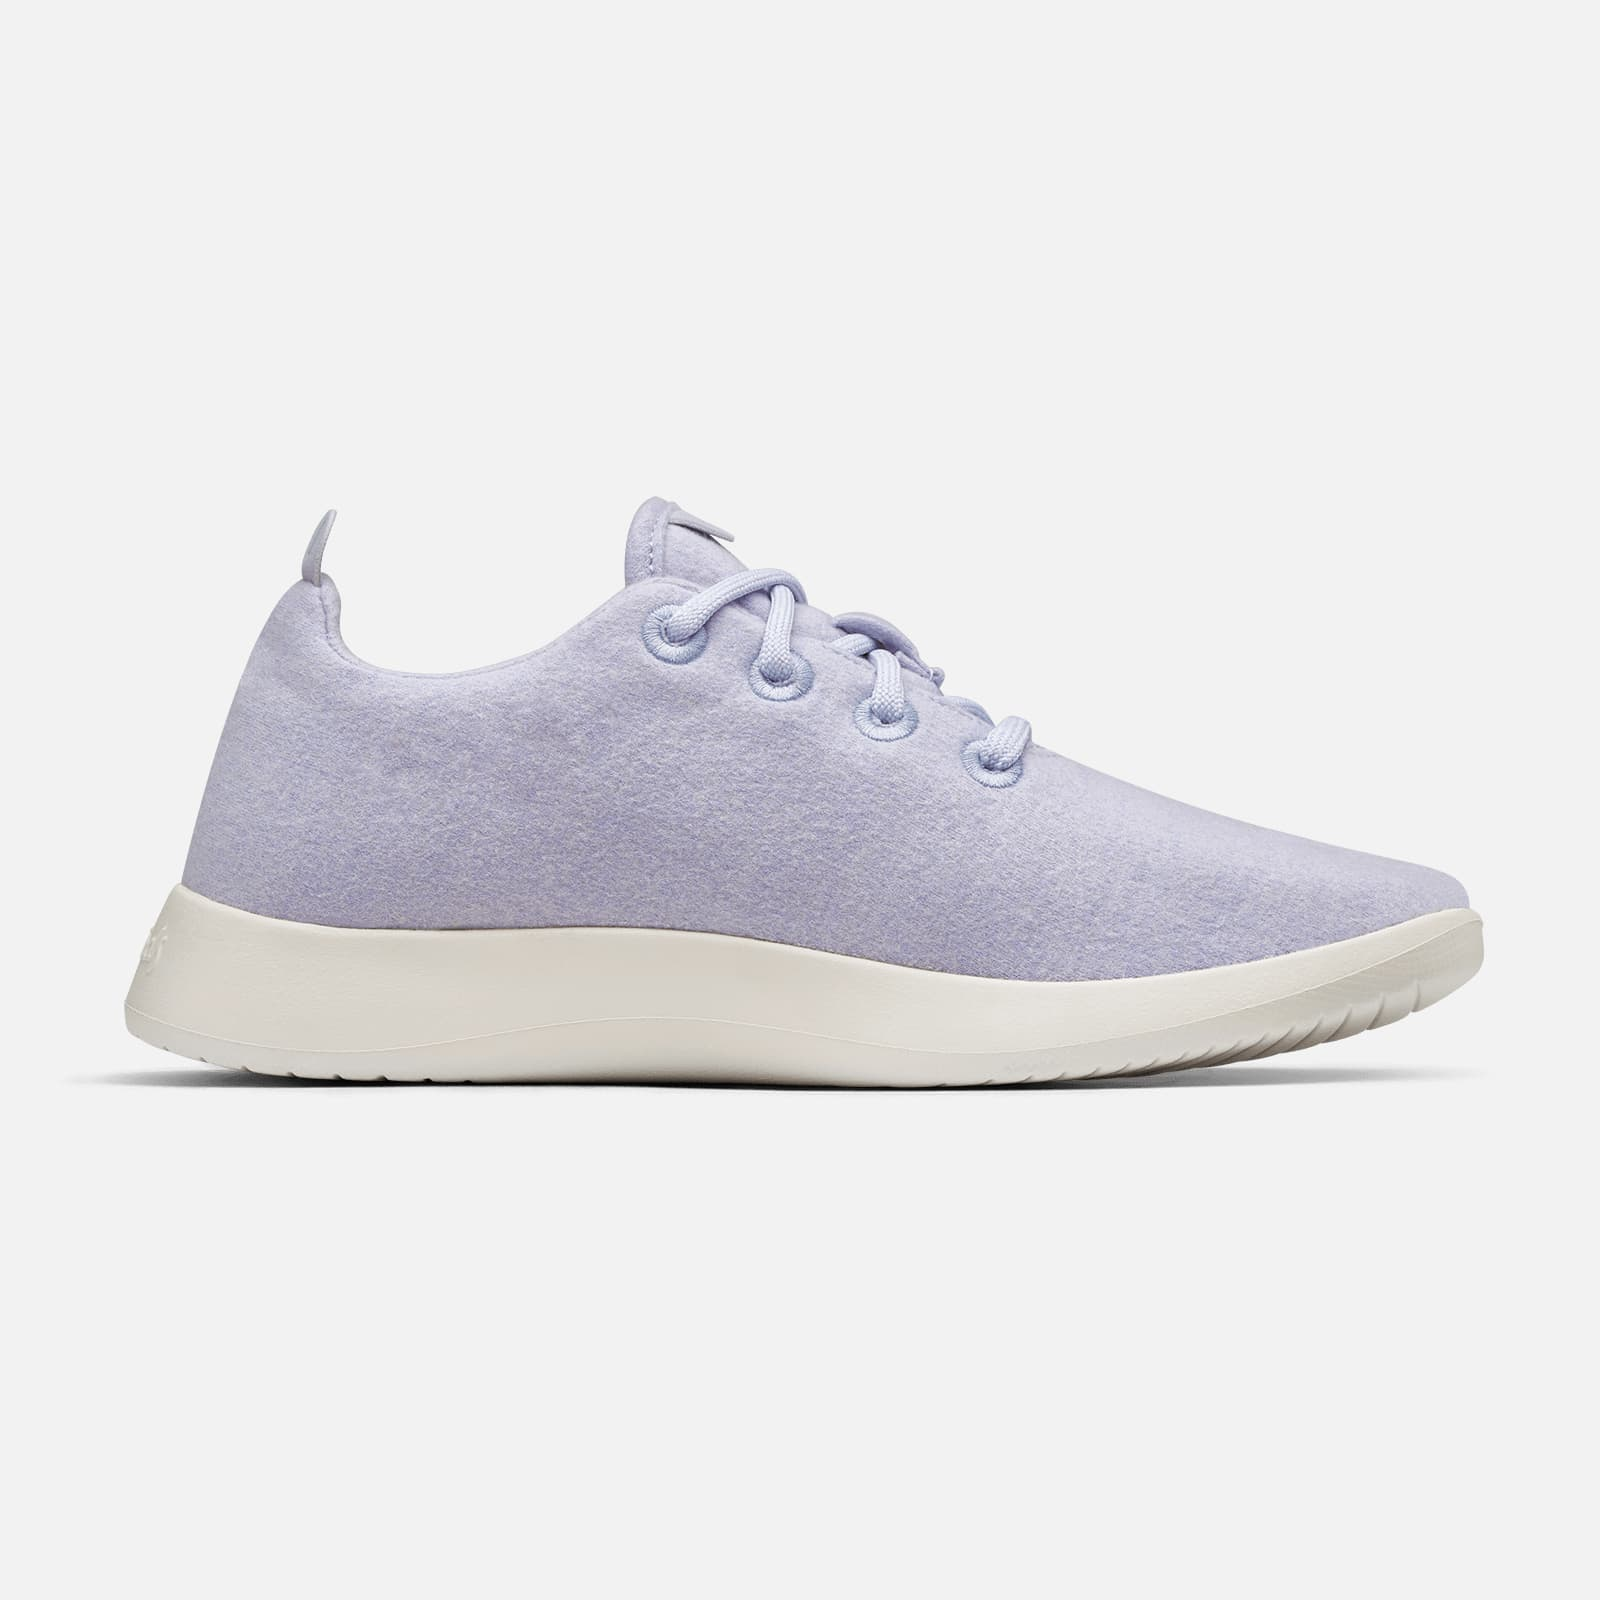 Allbirds_W_Wool_Runner_KOTARE_HEATHER_MED_1600x1600_Eyelids_V2_baa10af7-6372-4031-946a-52acabb25707.png?v=1534272080.jpg